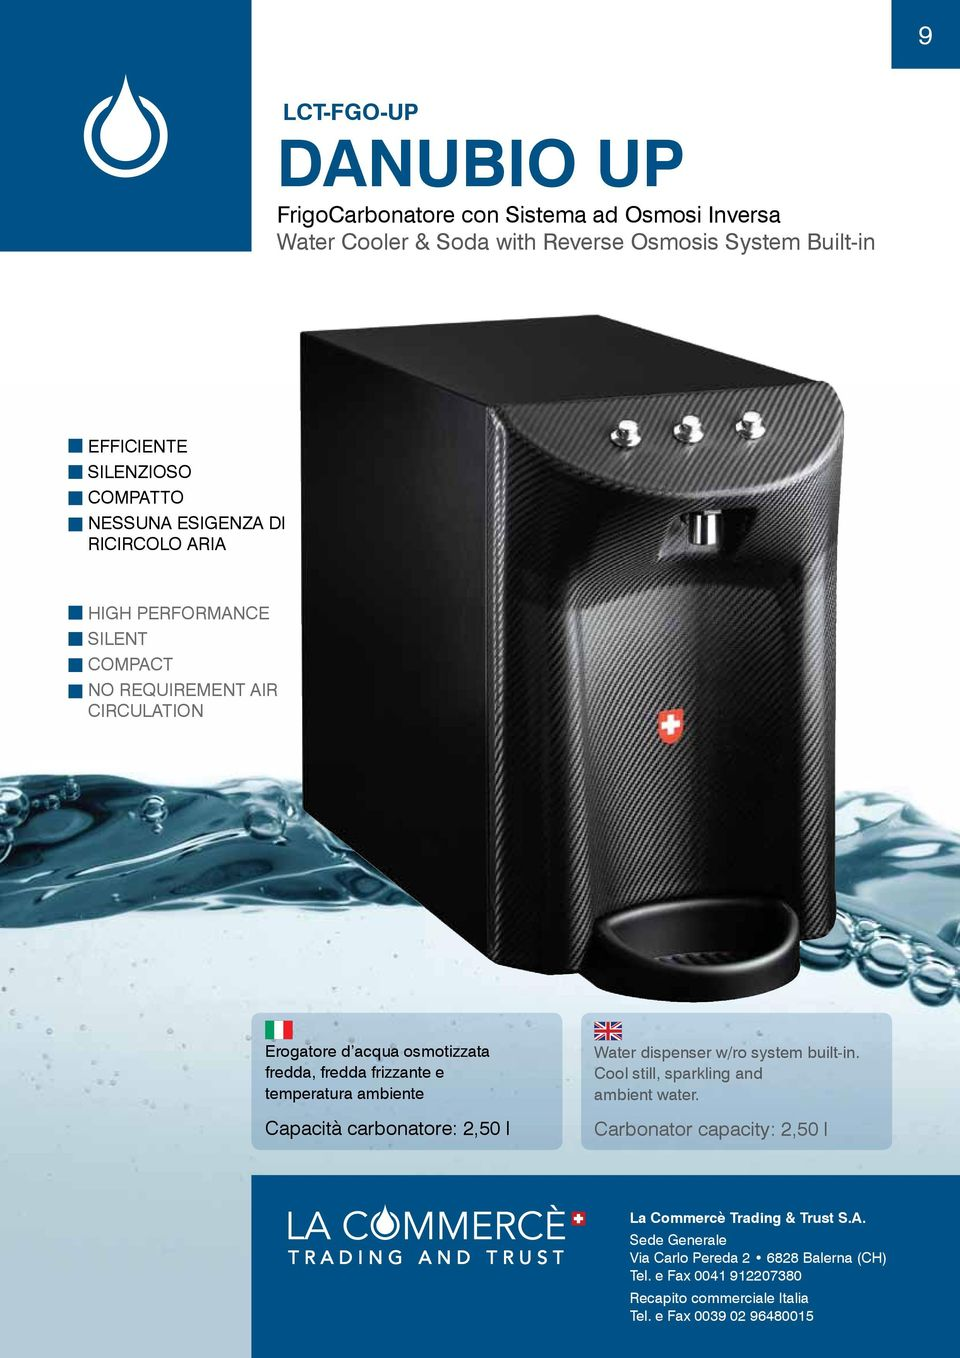 temperatura ambiente Capacità carbonatore: 2,50 l Water dispenser w/ro system built-in. Cool still, sparkling and ambient water.